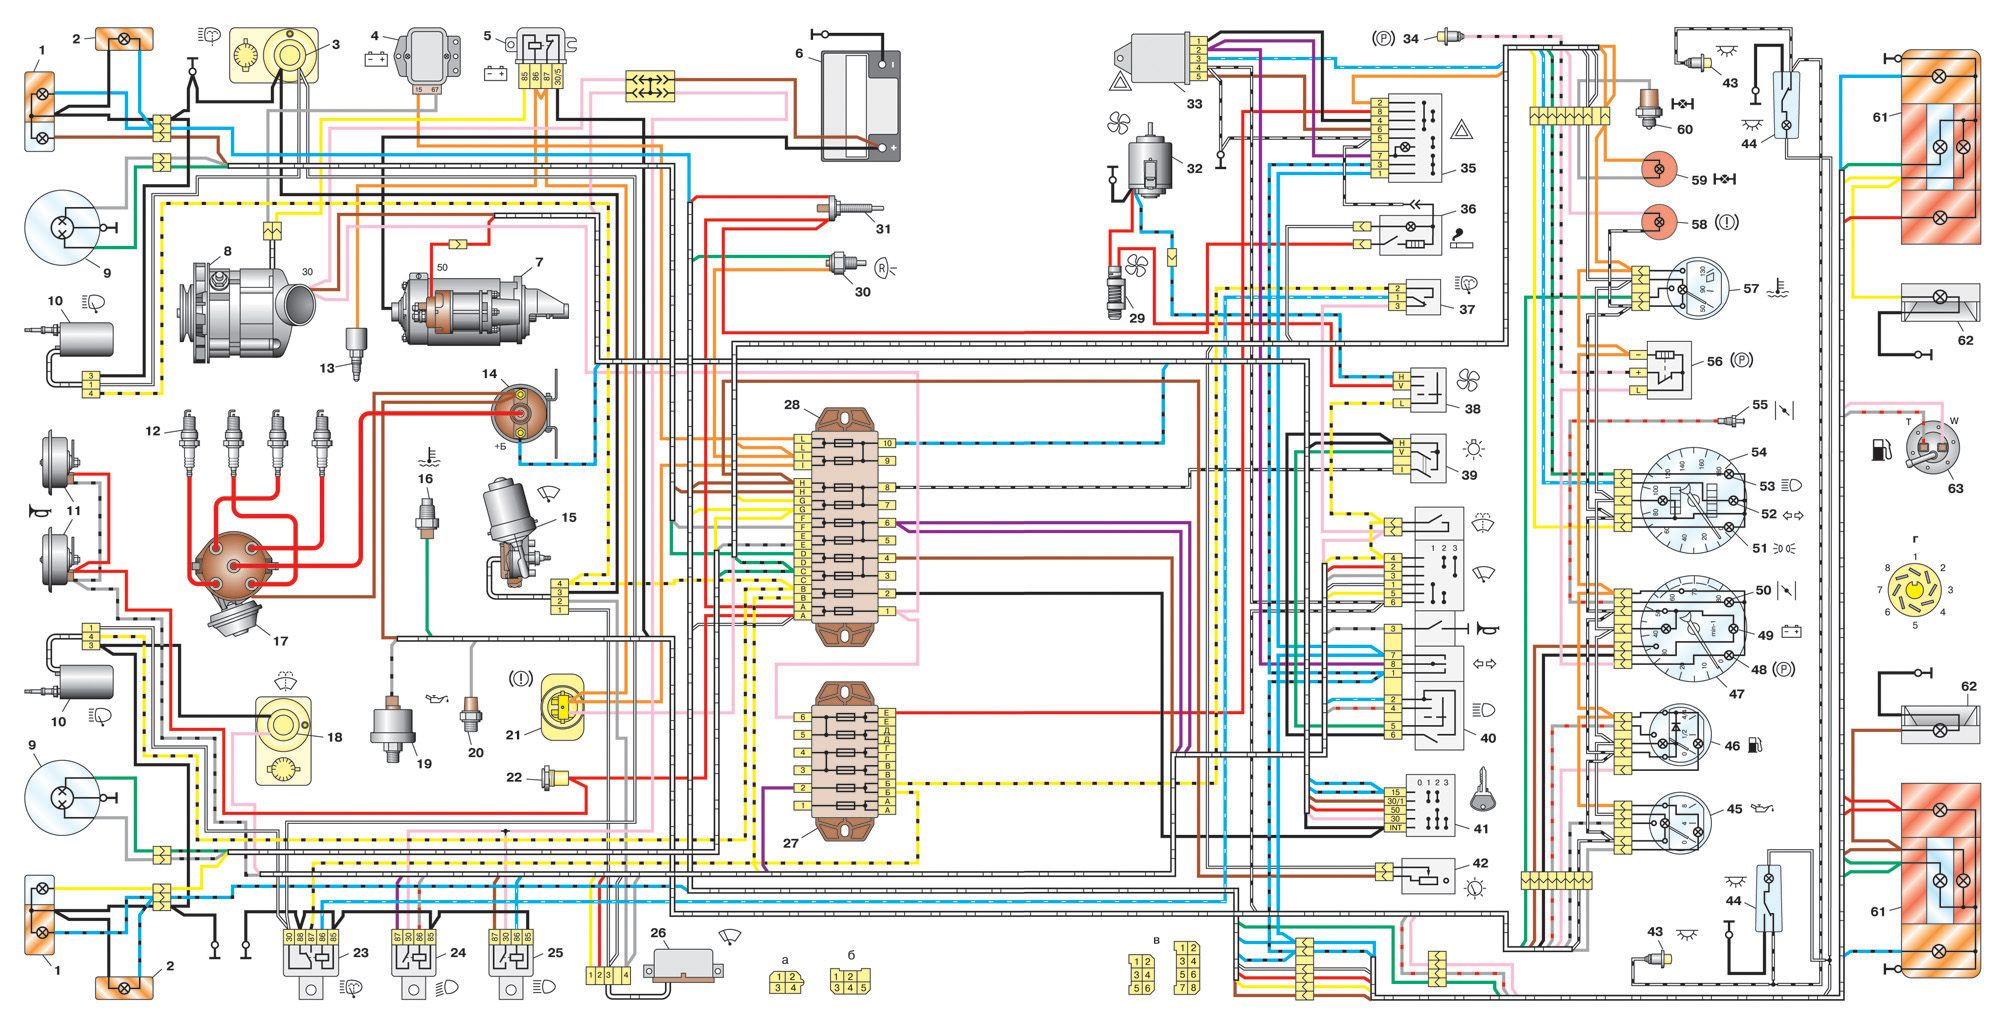 2000 Ford Focus Relay Box Diagram Wire Data Schema Wiring Saab 9 3 Get Free Image About Fuse